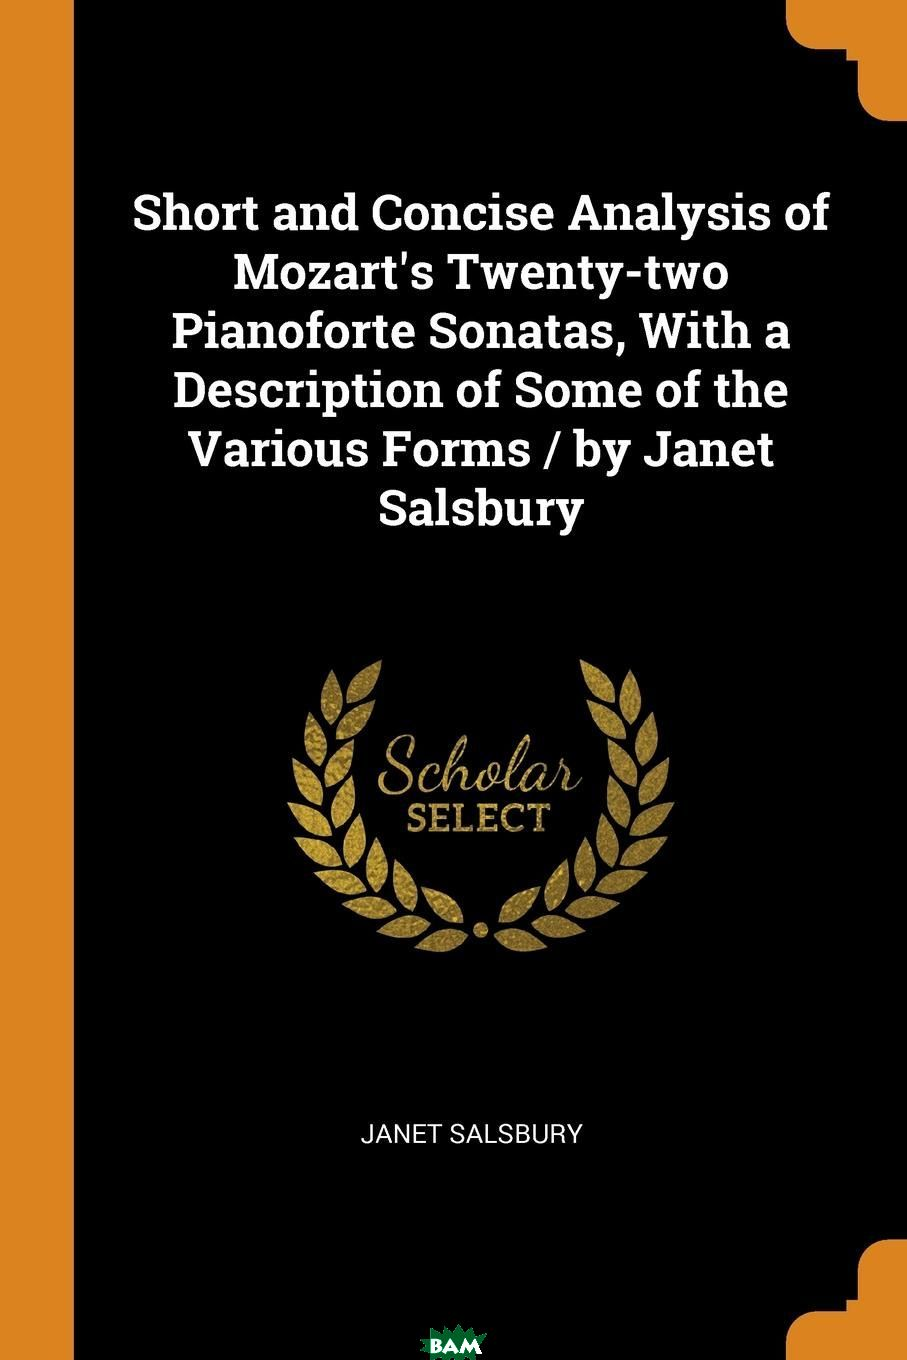 Купить Short and Concise Analysis of Mozart.s Twenty-two Pianoforte Sonatas, With a Description of Some of the Various Forms / by Janet Salsbury, 9780342608058